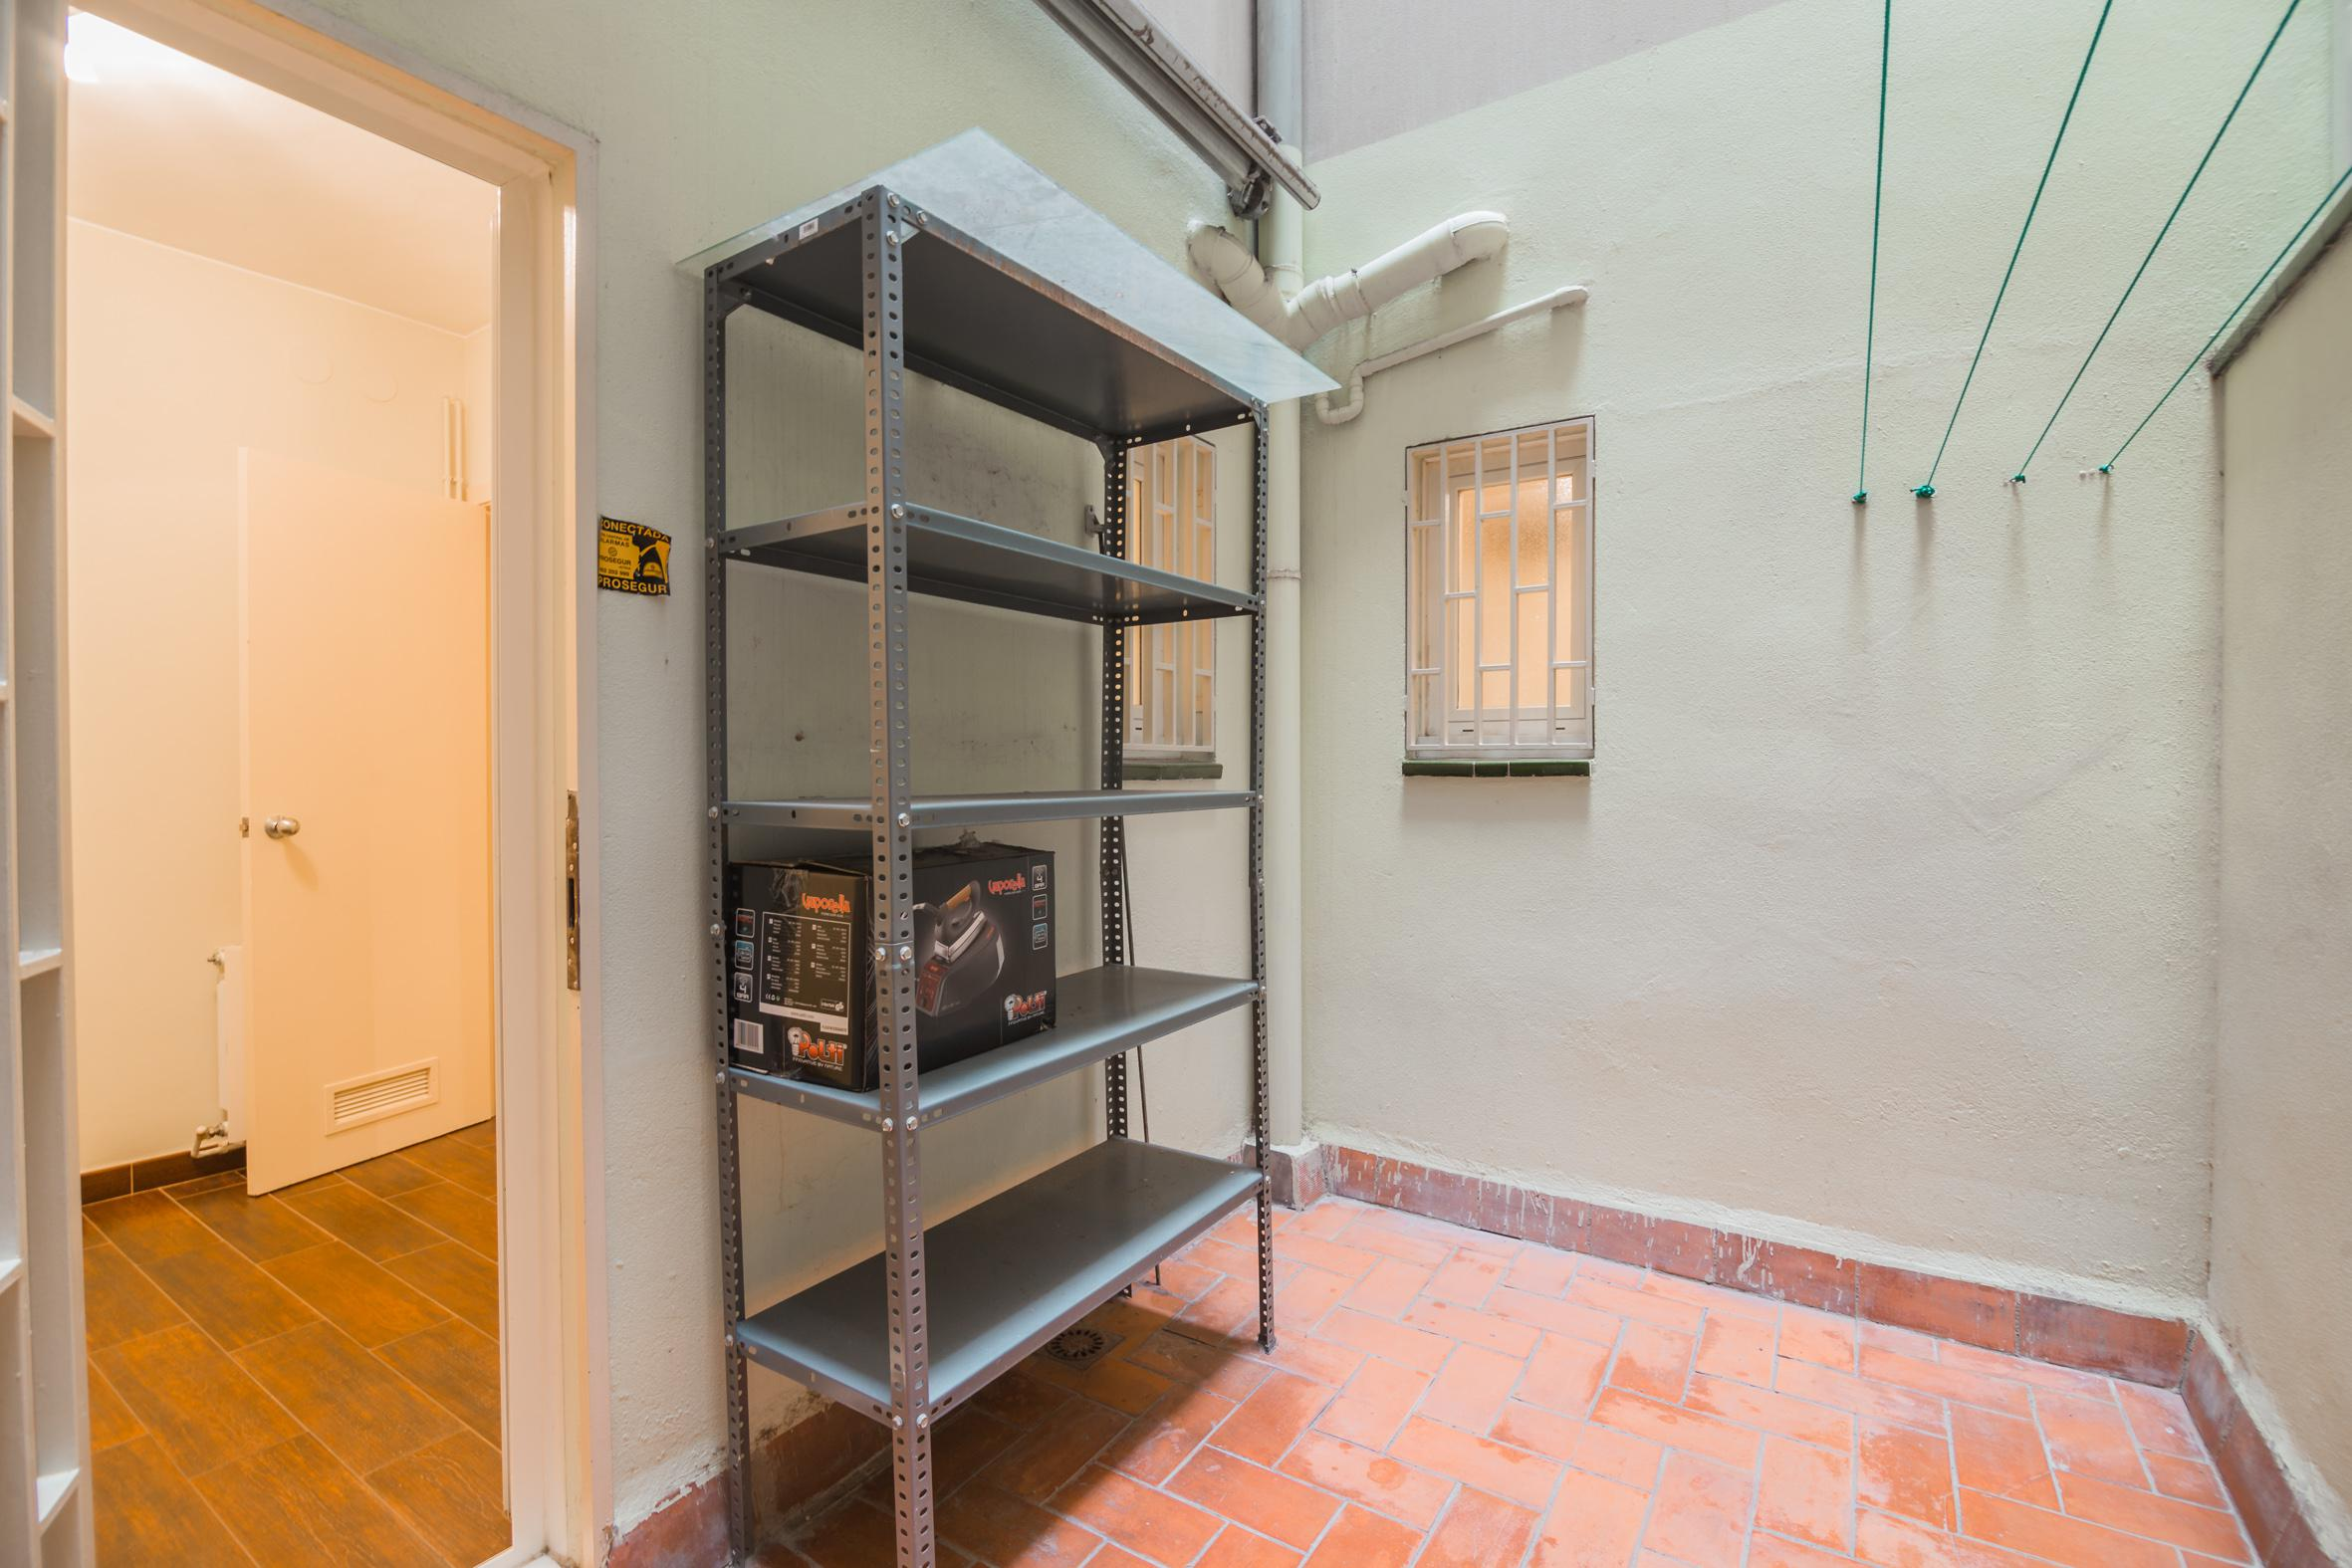 246902 Flat for sale in Les Corts, Pedralbes 24